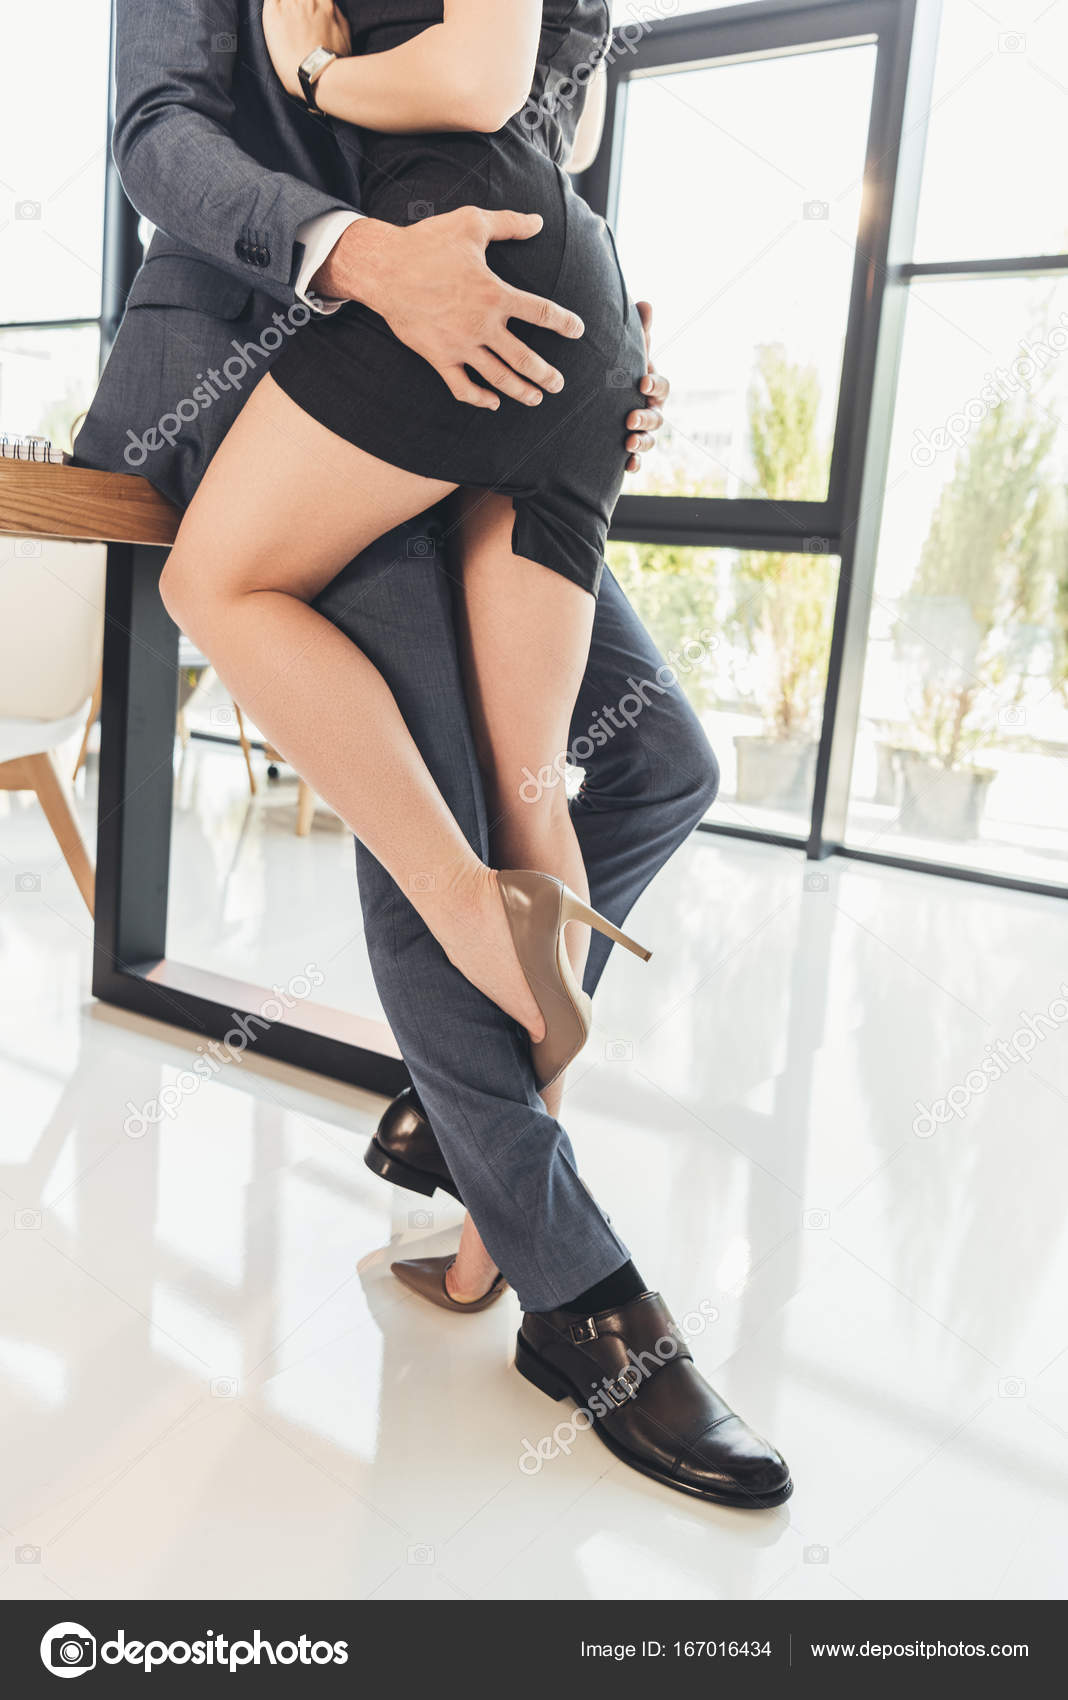 Ass Grope ᐈ groping stock pictures, royalty free grope photos